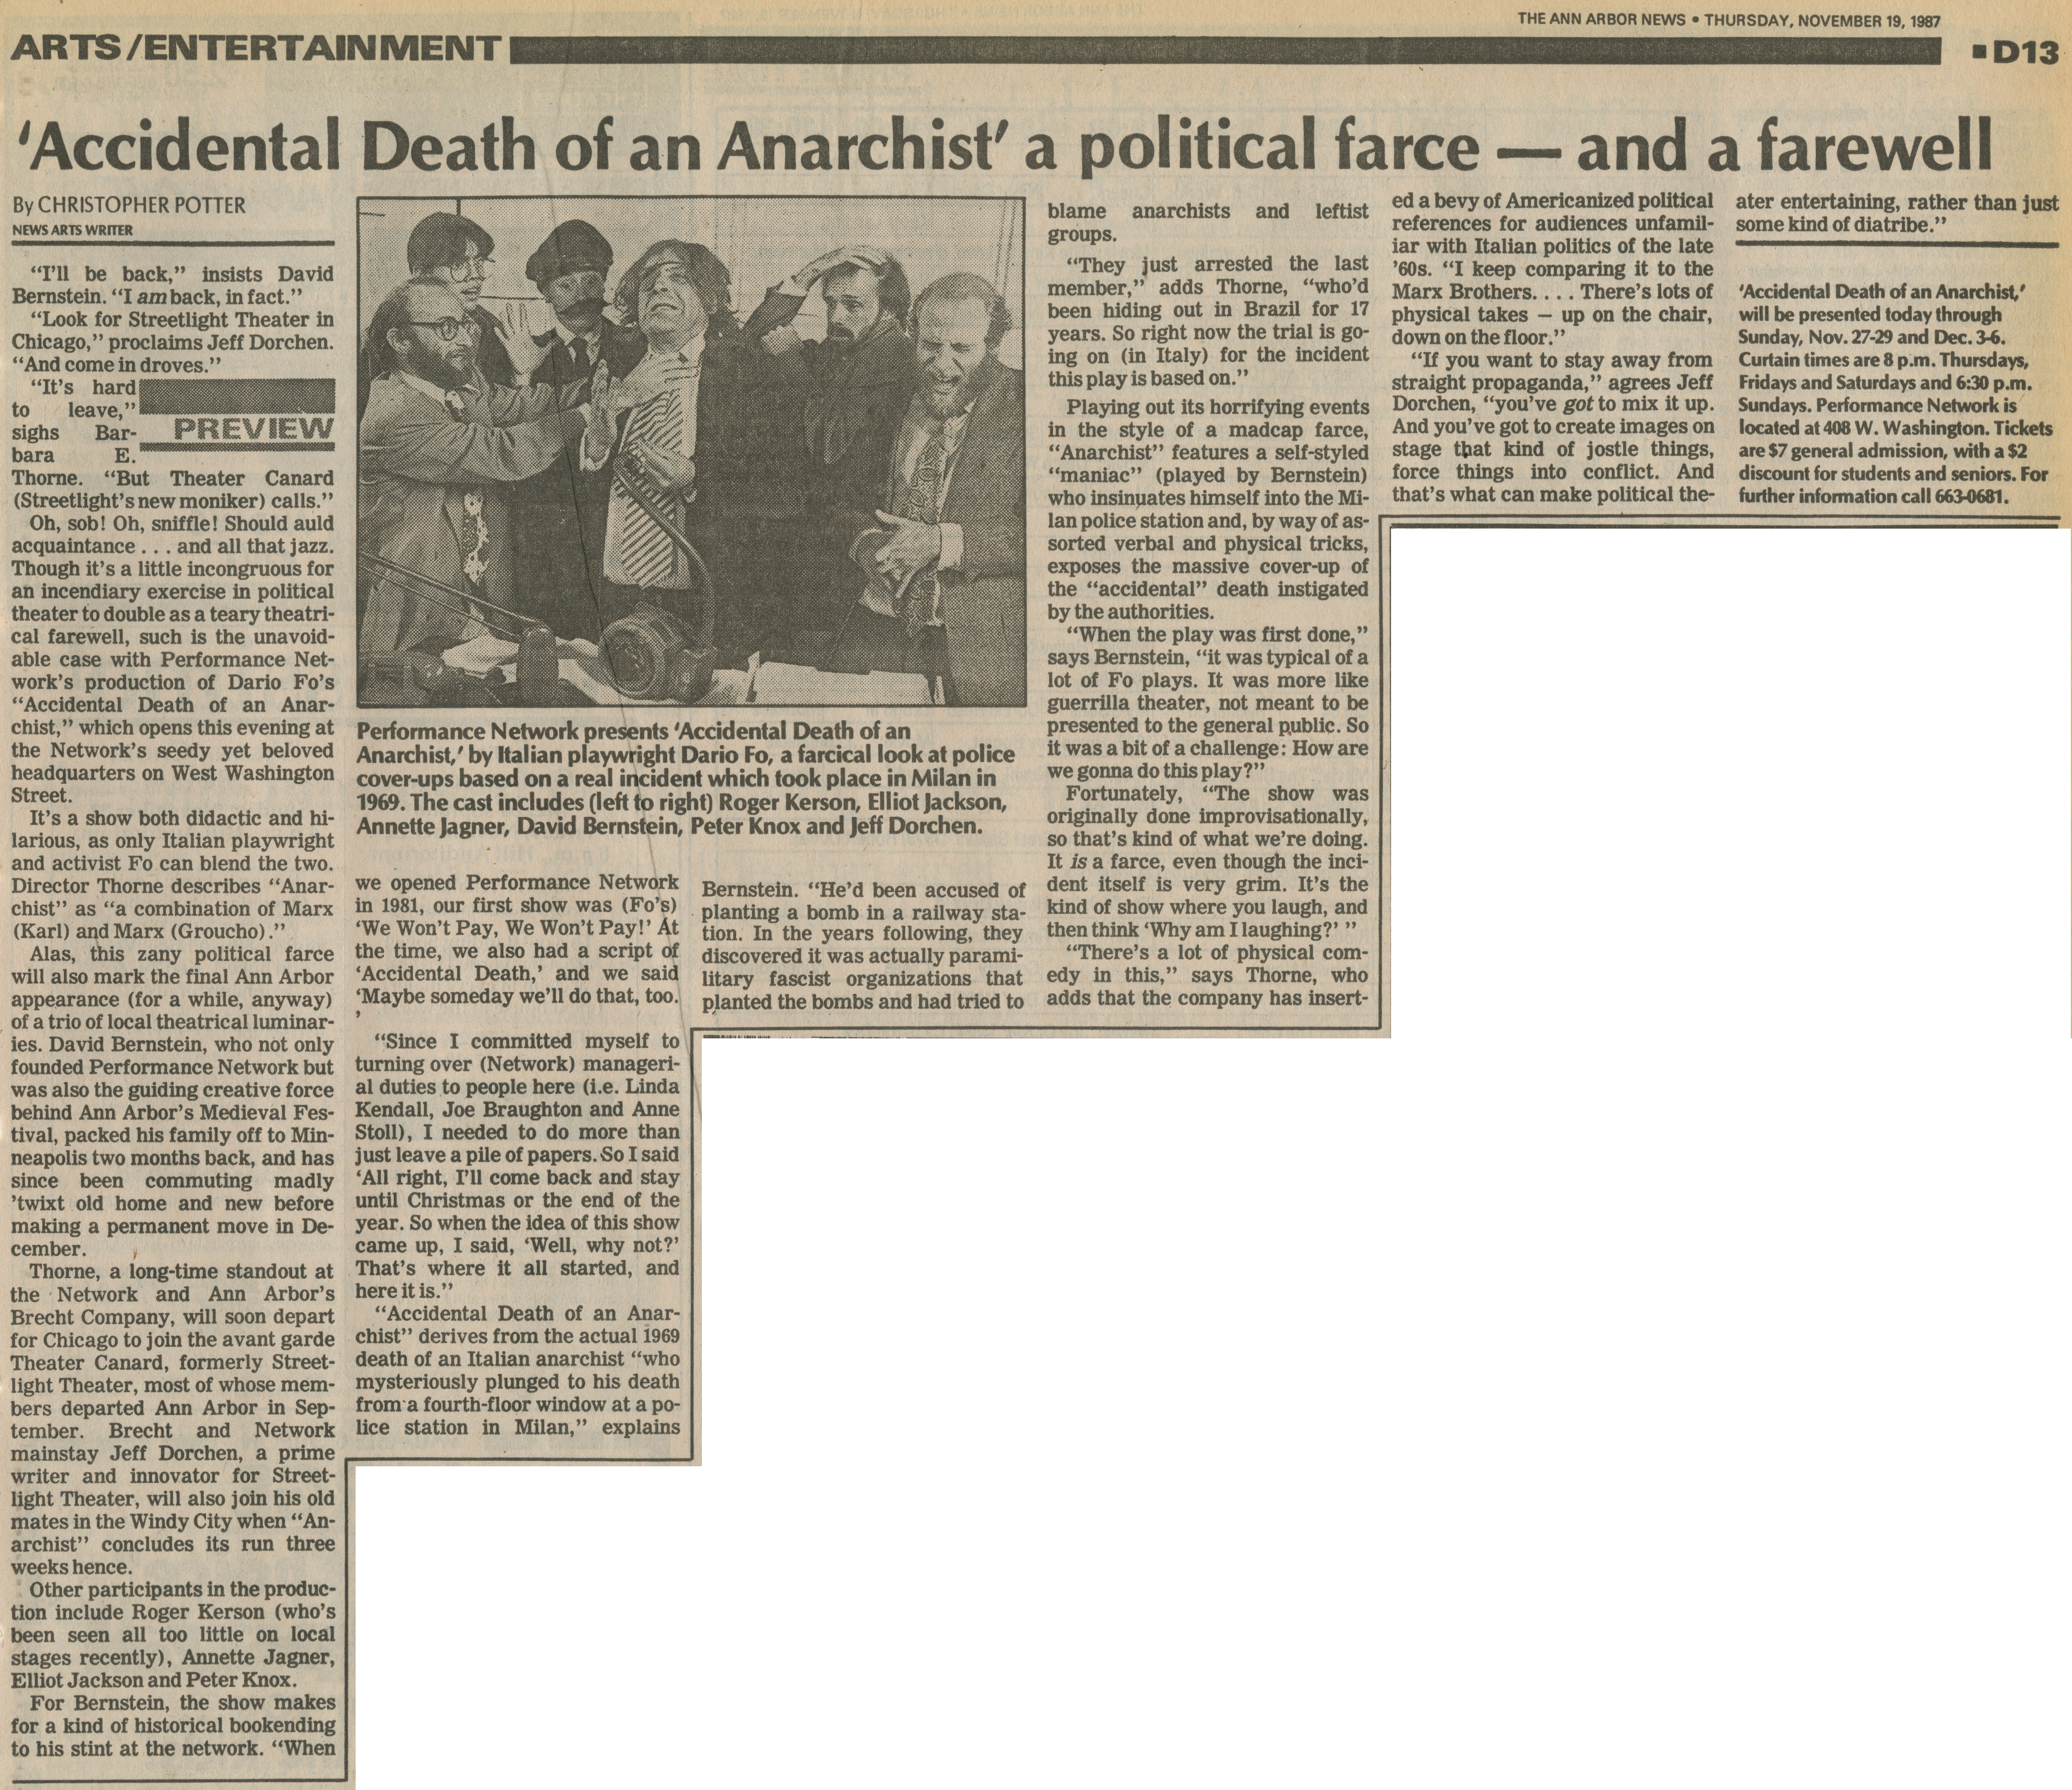 'Accidental Death of an Anarchist' a political farce - and a farewell image